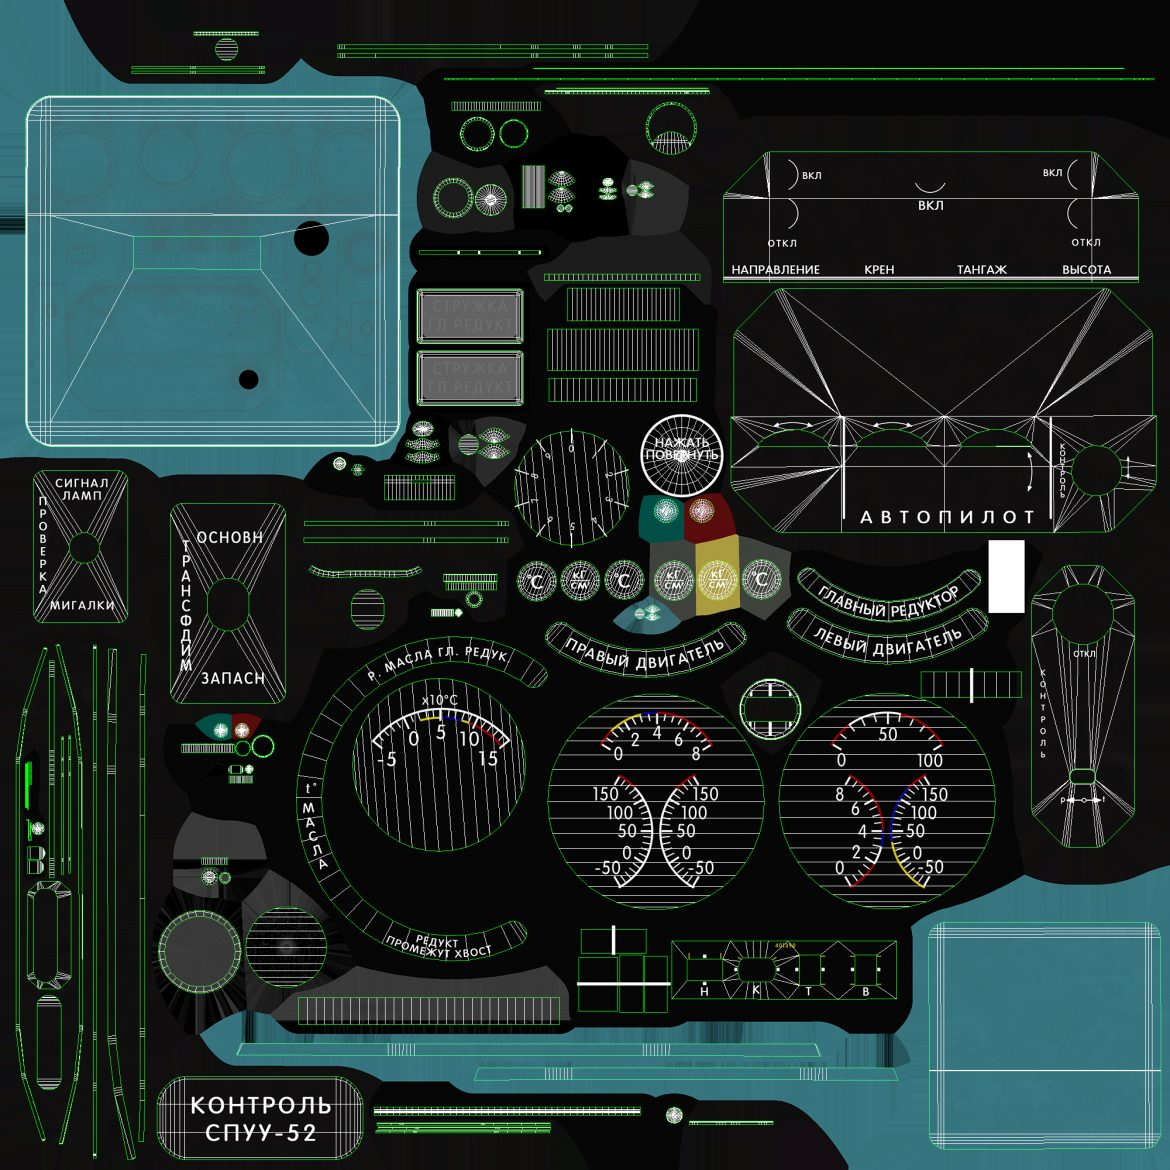 mi-8mt mi-17mt panel boards russian 3d model 3ds max fbx obj 302033